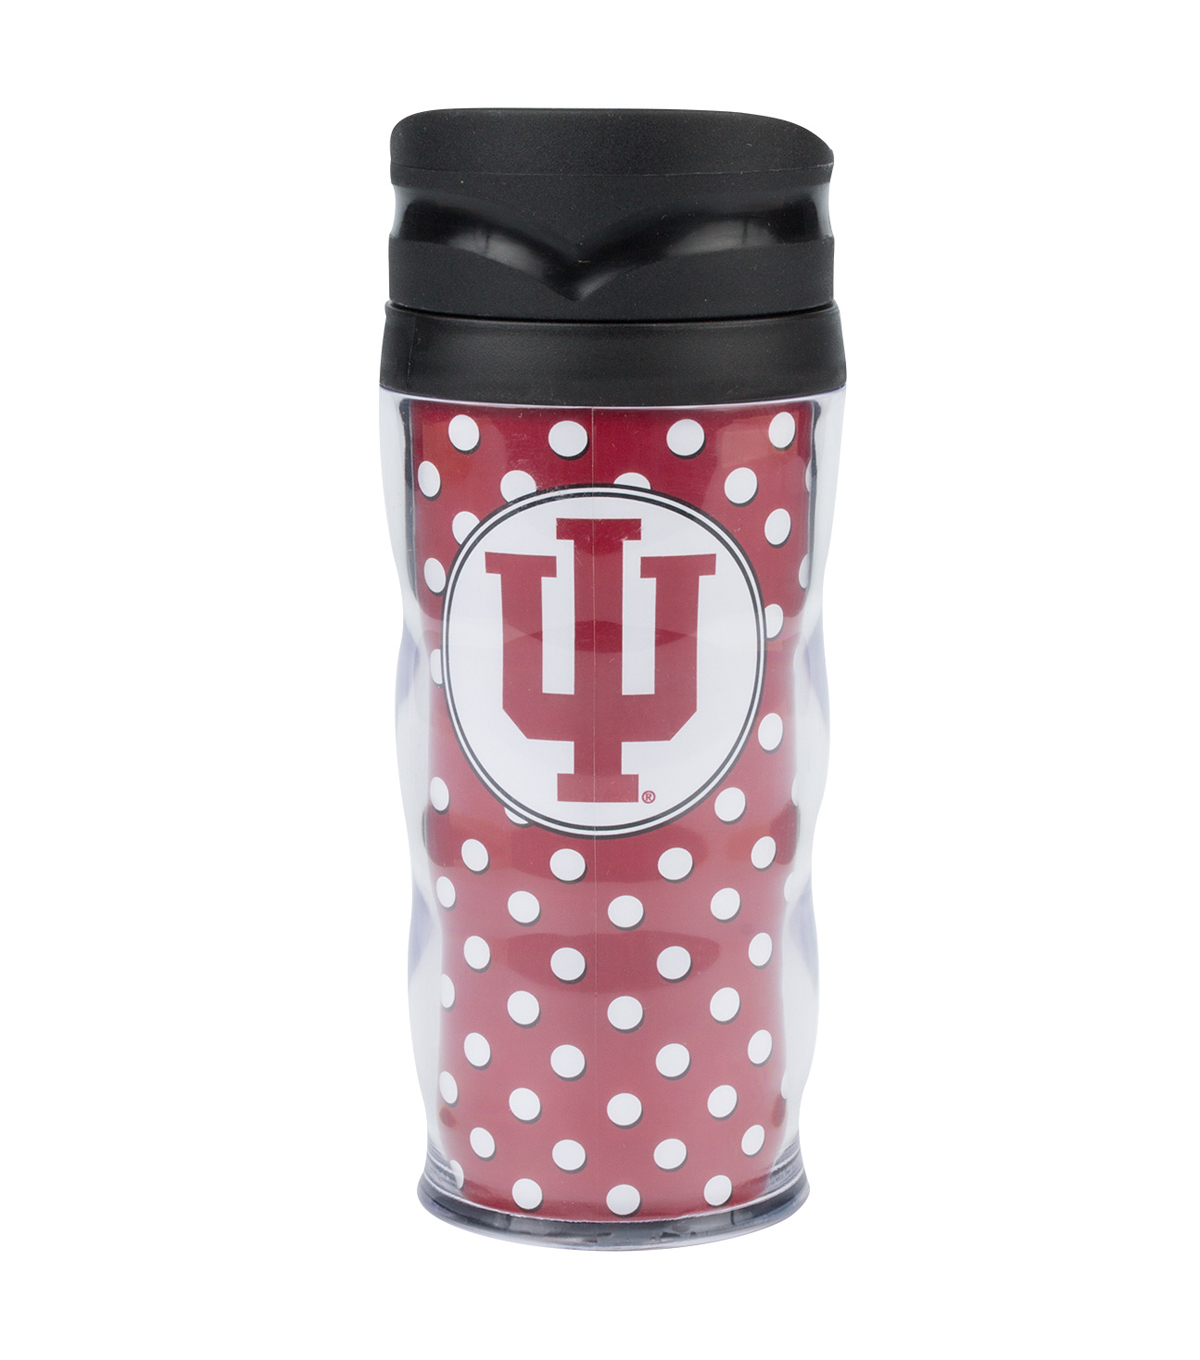 Indiana University Polka Dot Travel Mug